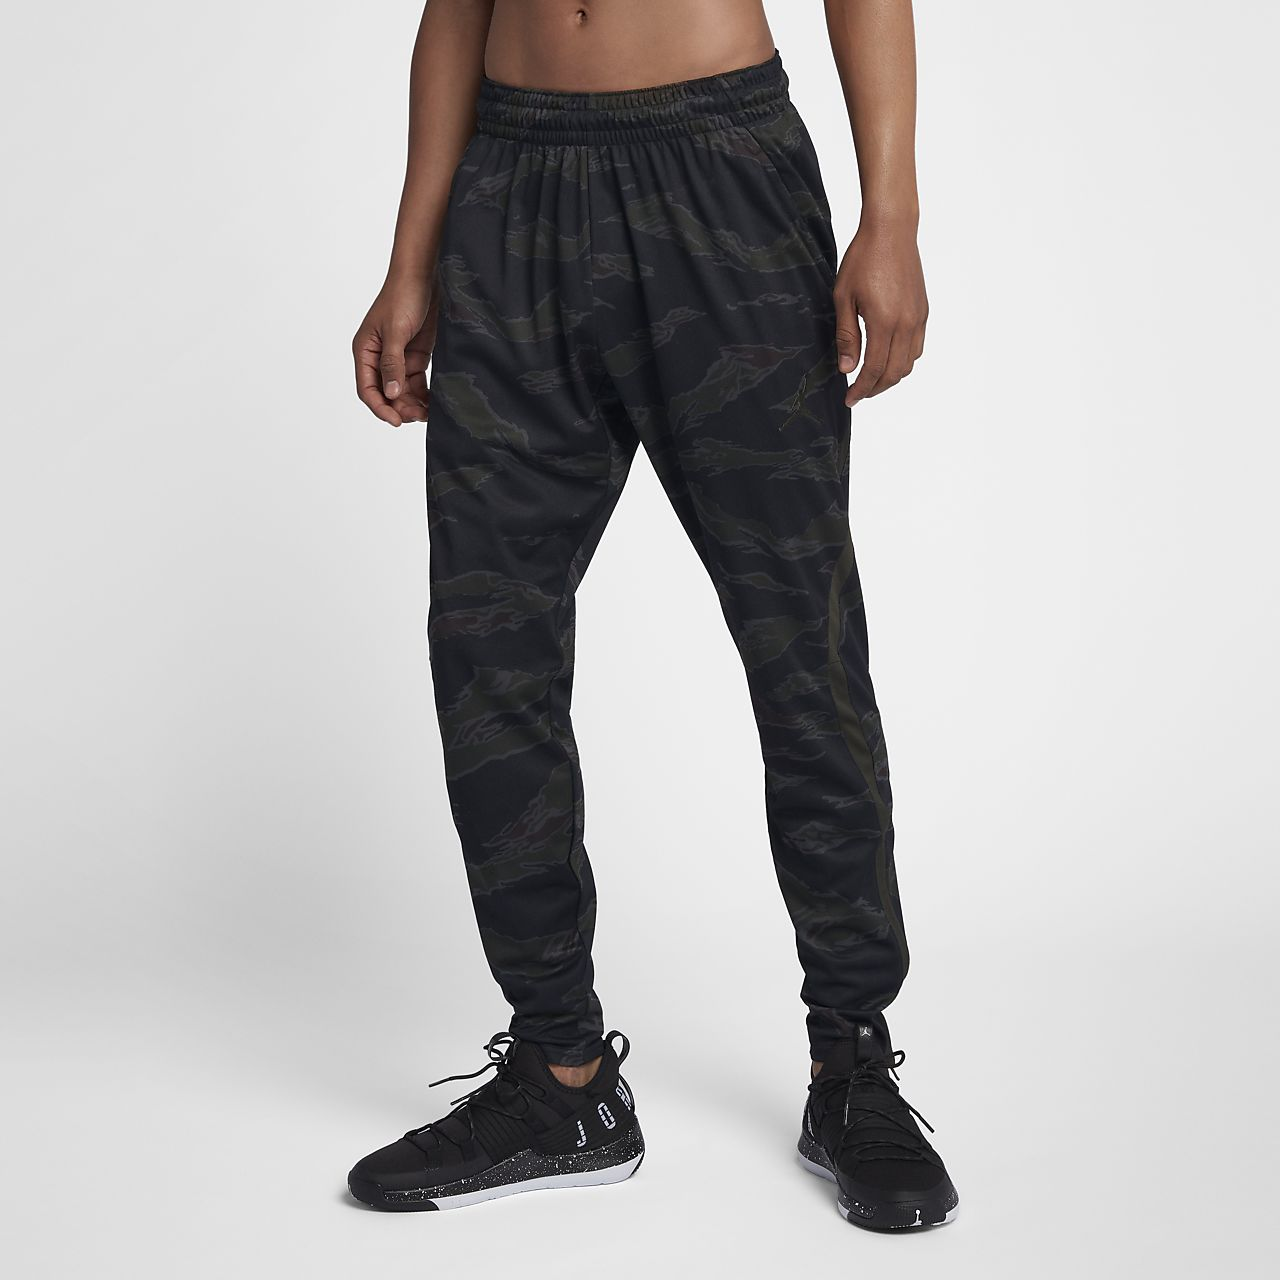 b3b38a6a0e9194 Jordan Dri-FIT 23 Alpha Men s Print Training Trousers. Nike.com IN